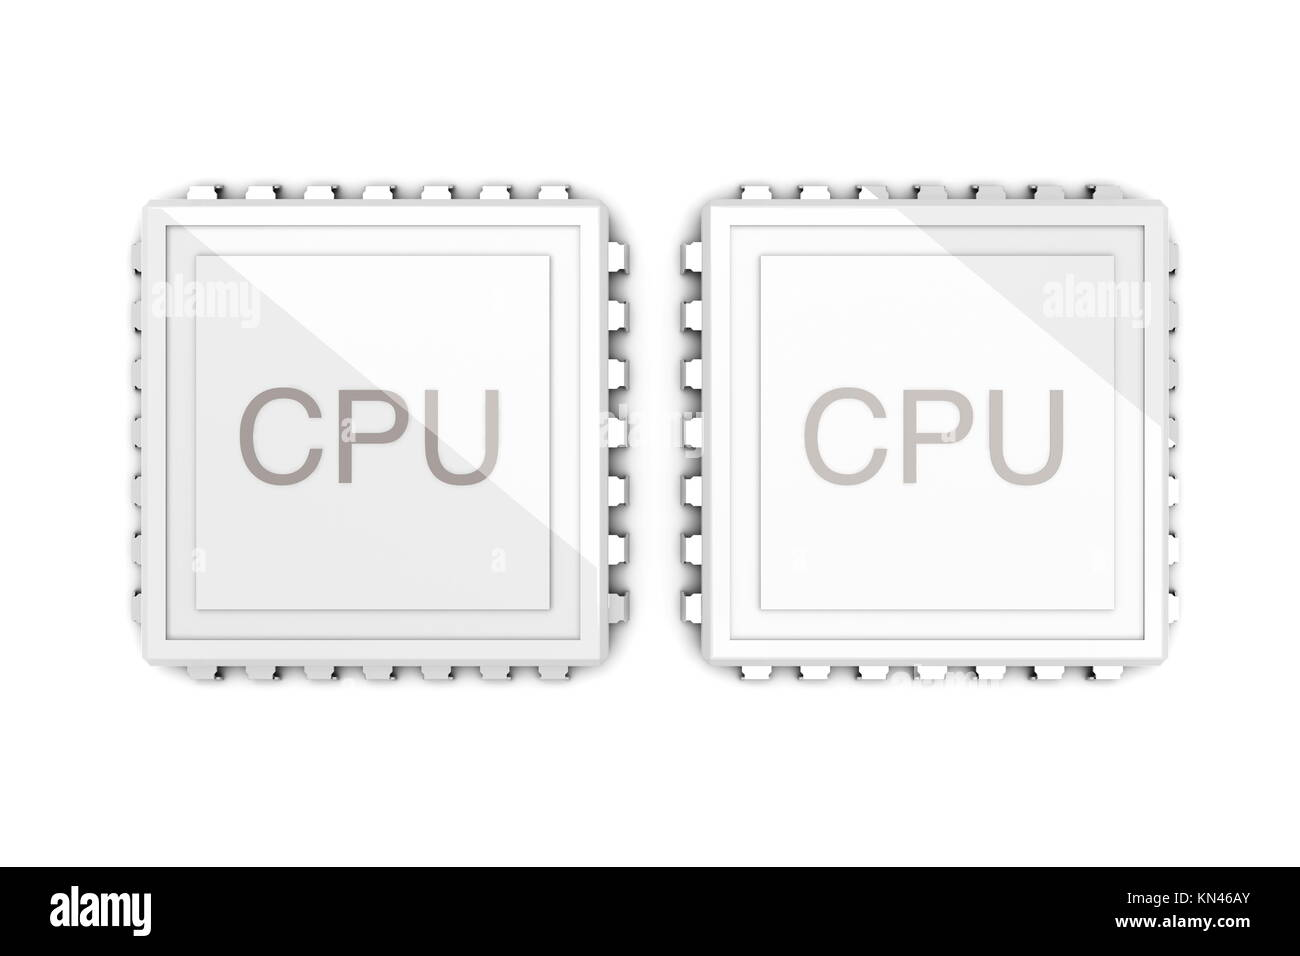 3D rendered Illustration. Two core CPU. Isolated on white. - Stock Image